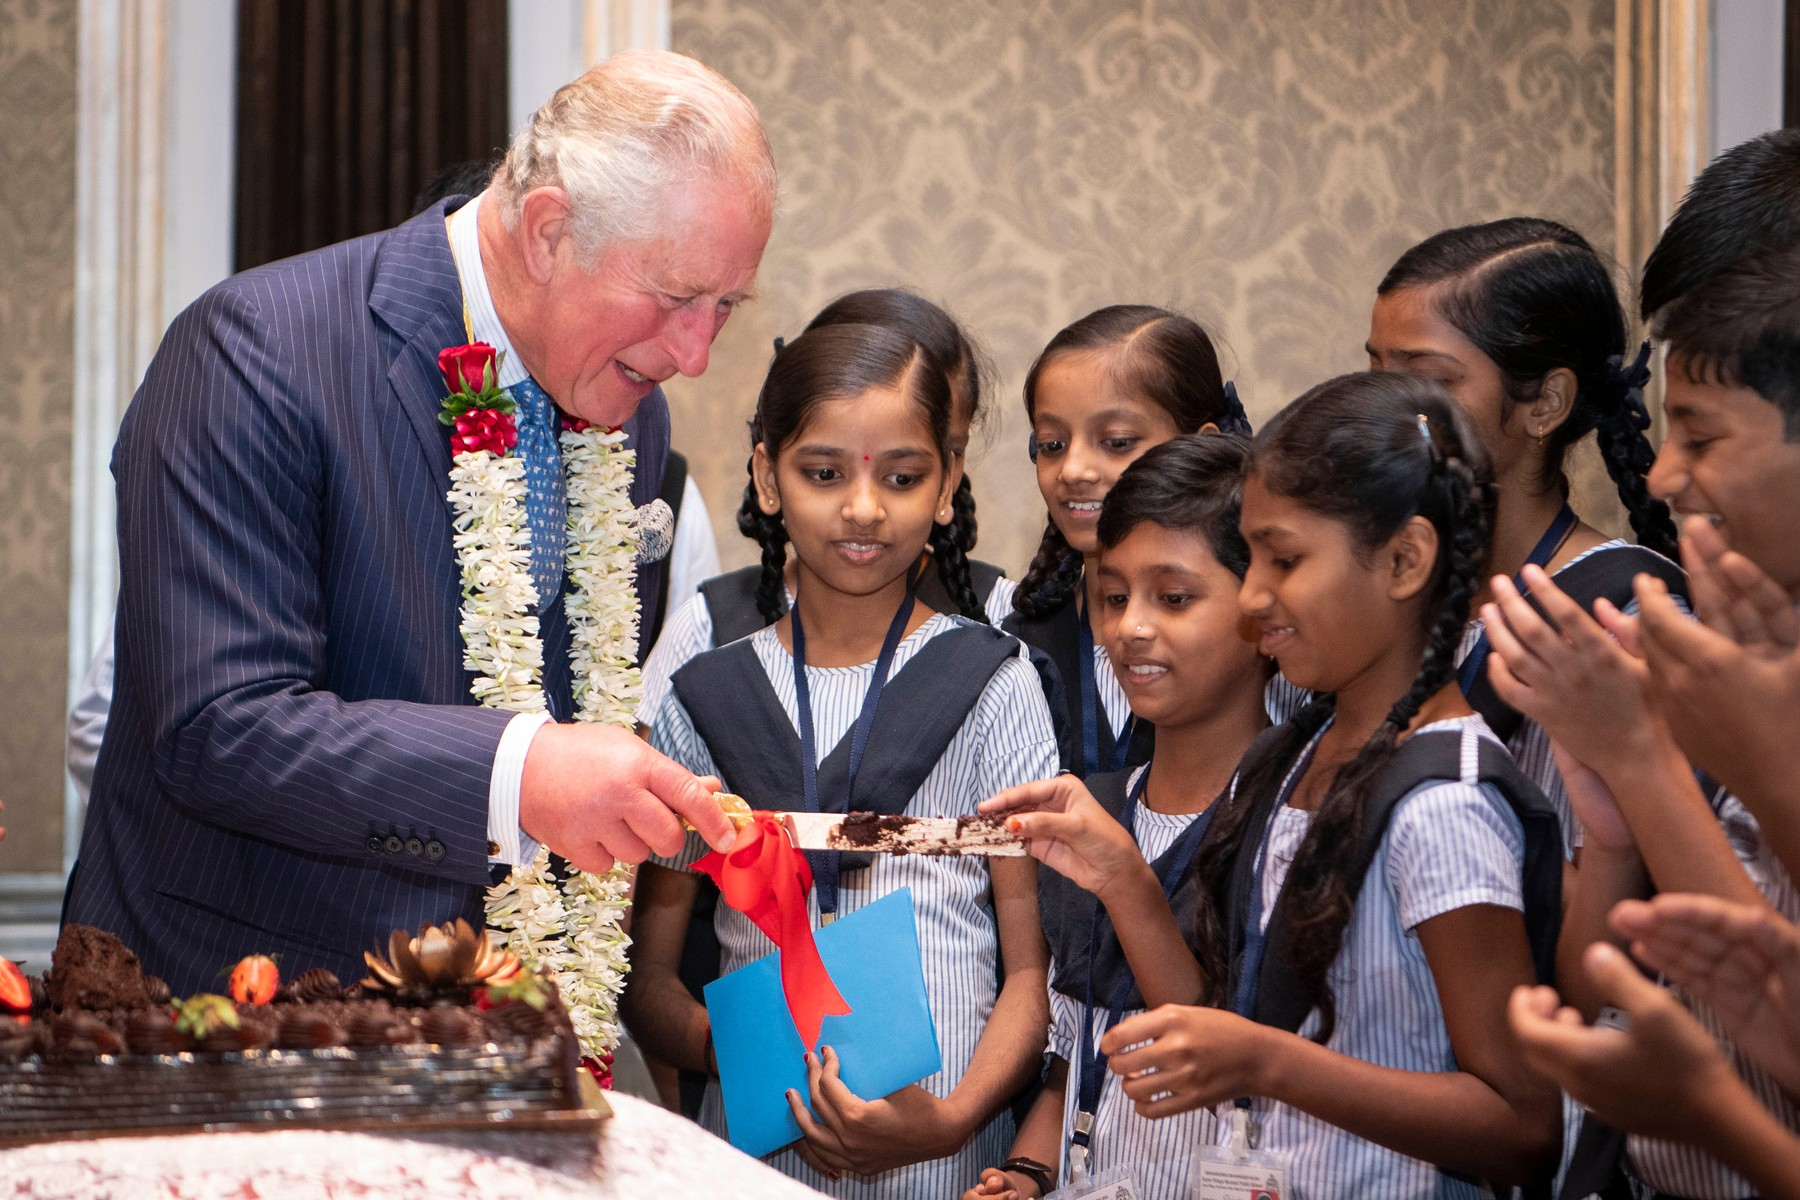 The Prince of Wales offers a piece of birthday cake to a school girl during a British Asian Trust reception in Mumbai, on day two of the royal visit to India., Image: 482790950, License: Rights-managed, Restrictions: , Model Release: no, Credit line: Victoria Jones / PA Images / Profimedia